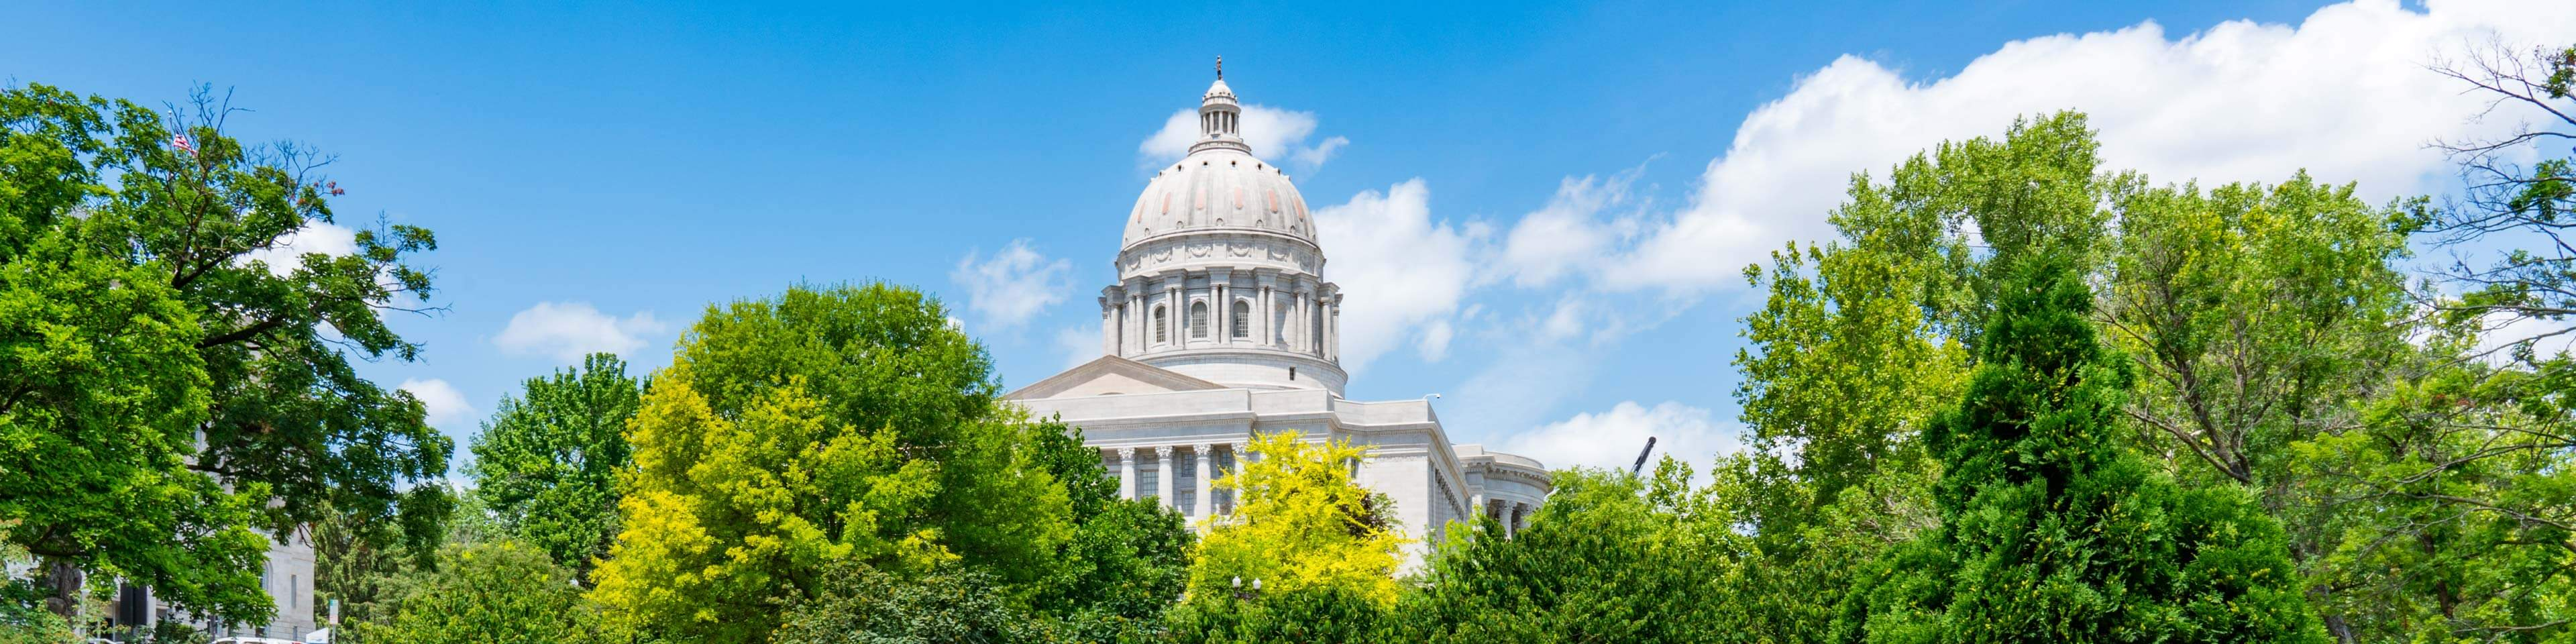 Missouri Set to Become Last State to Require Remote/Online Sellers to Collect and Remit Sales Tax